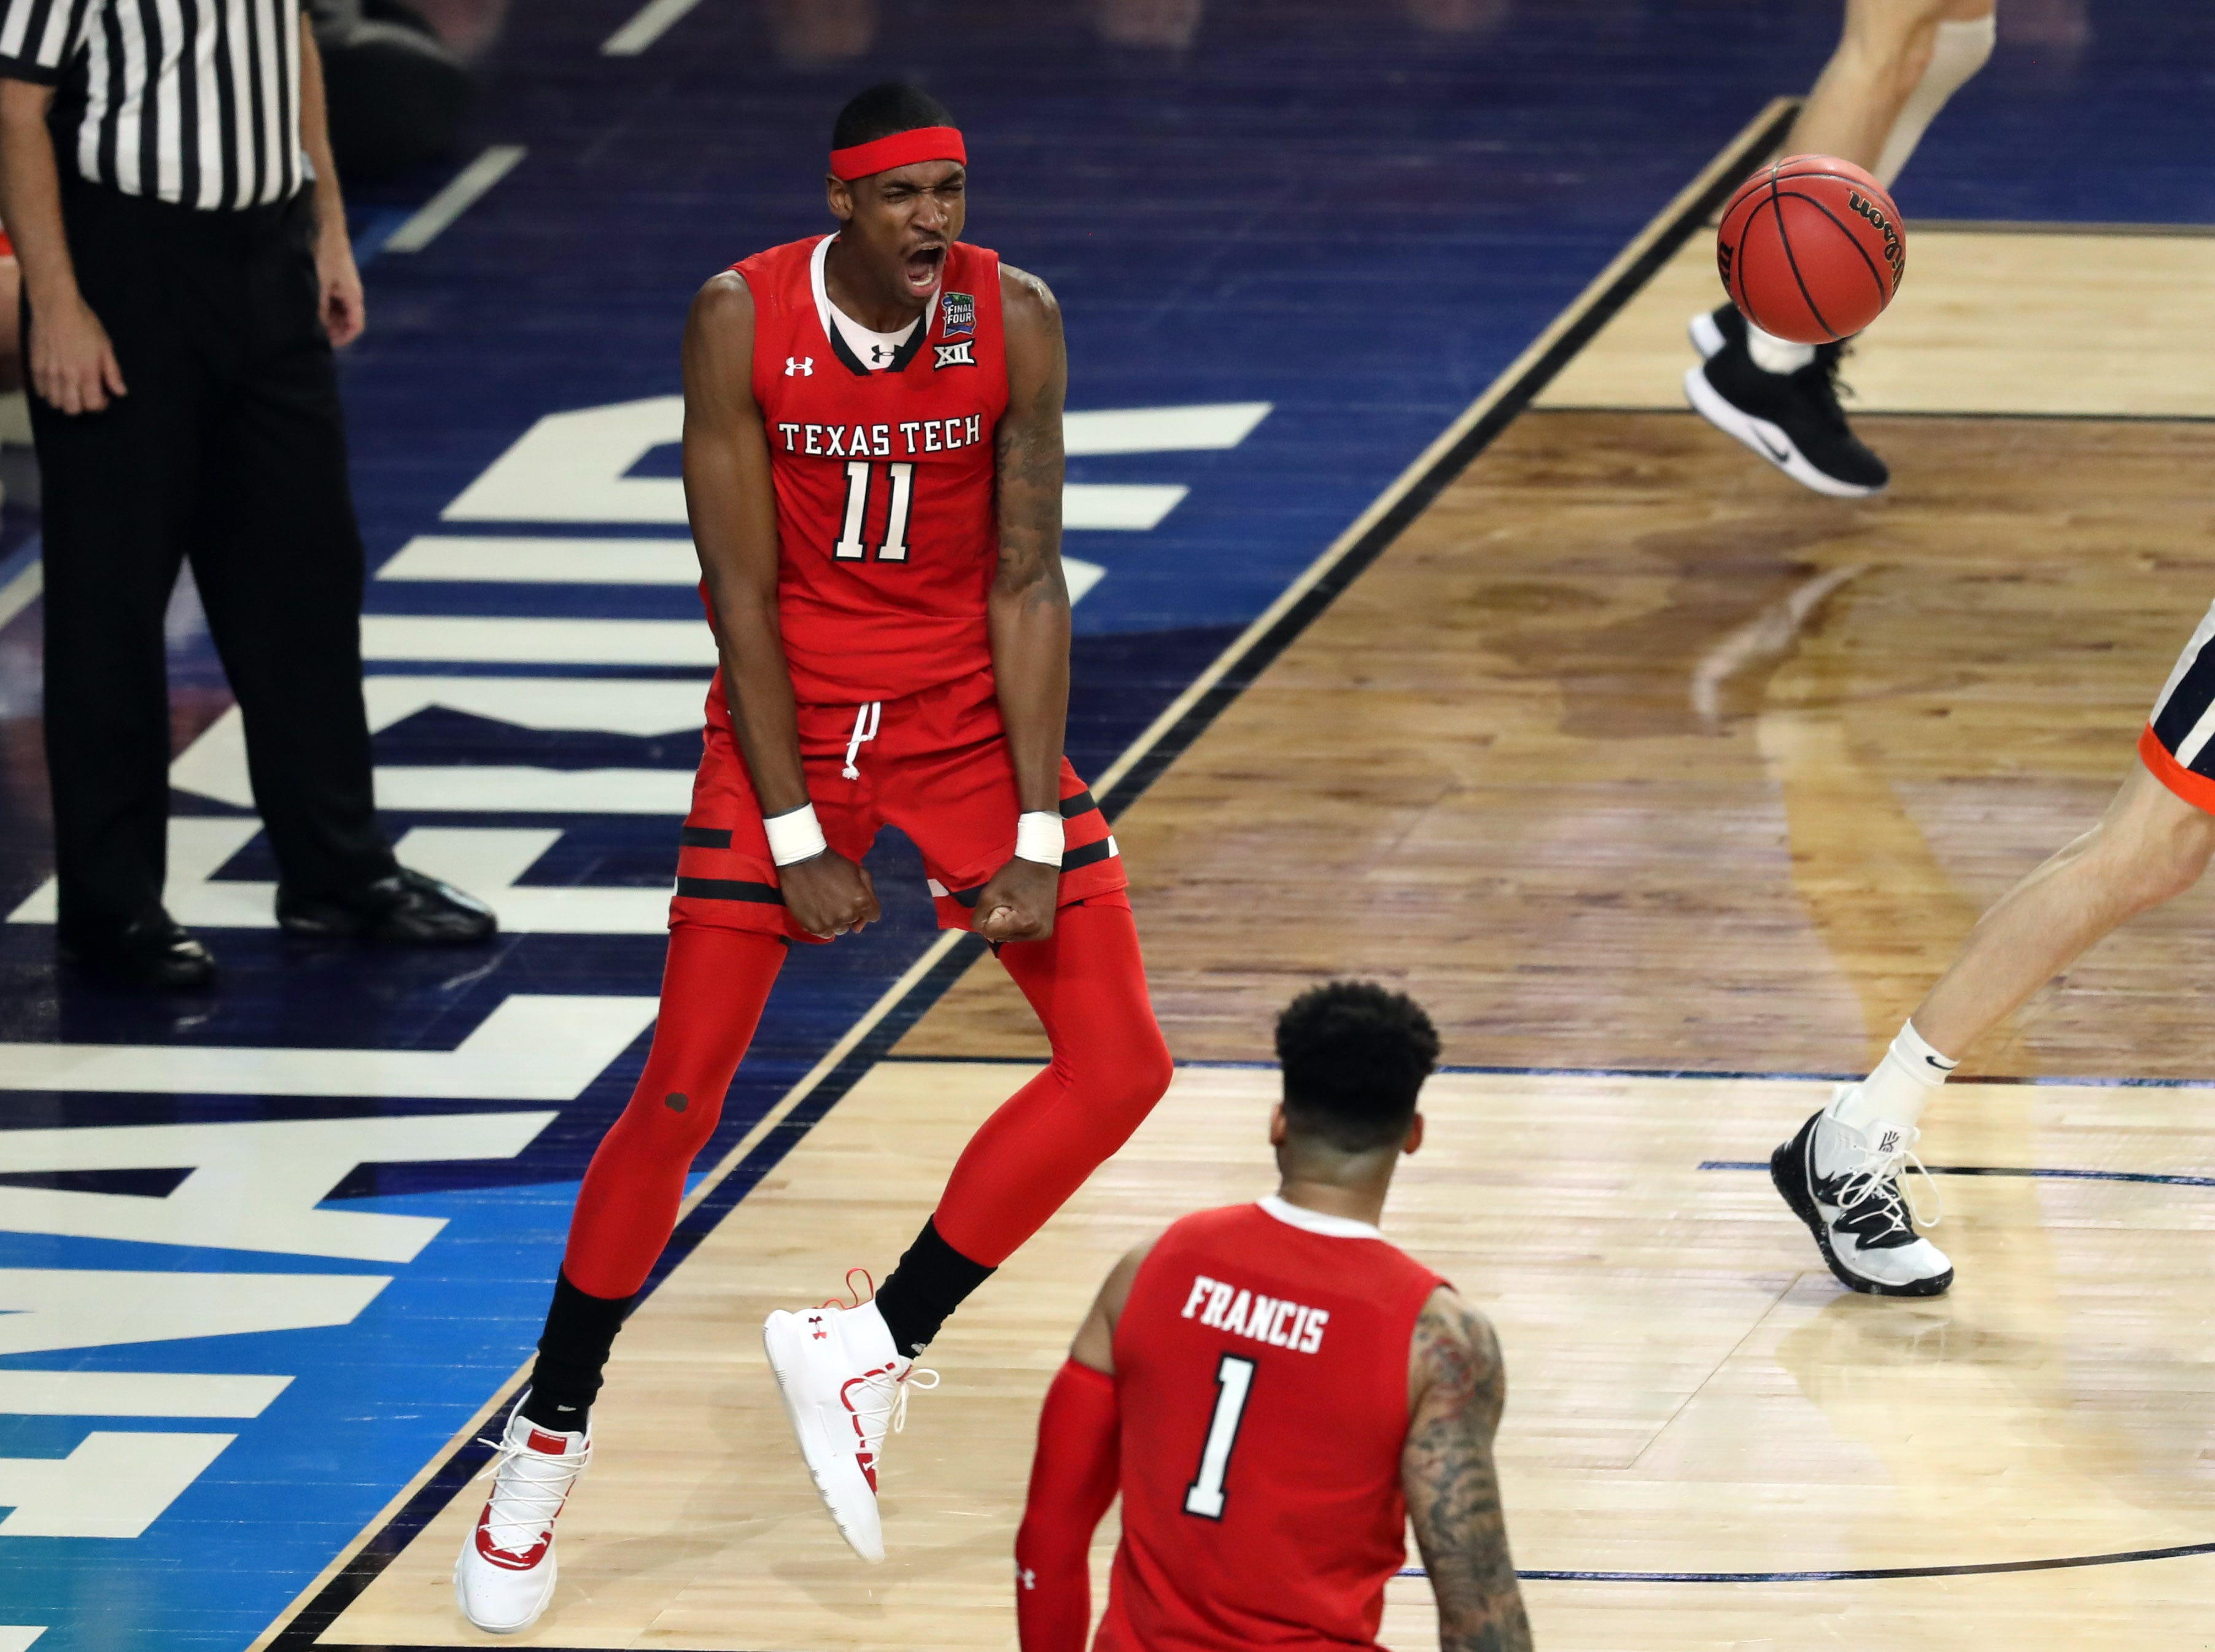 Apr 8, 2019; Minneapolis, MN, USA; Texas Tech Red Raiders forward Tariq Owens (11) celebrates after dunking the ball against the Virginia Cavaliers in the championship game of the 2019 men's Final Four at US Bank Stadium. Mandatory Credit: Brace Hemmelgarn-USA TODAY Sports